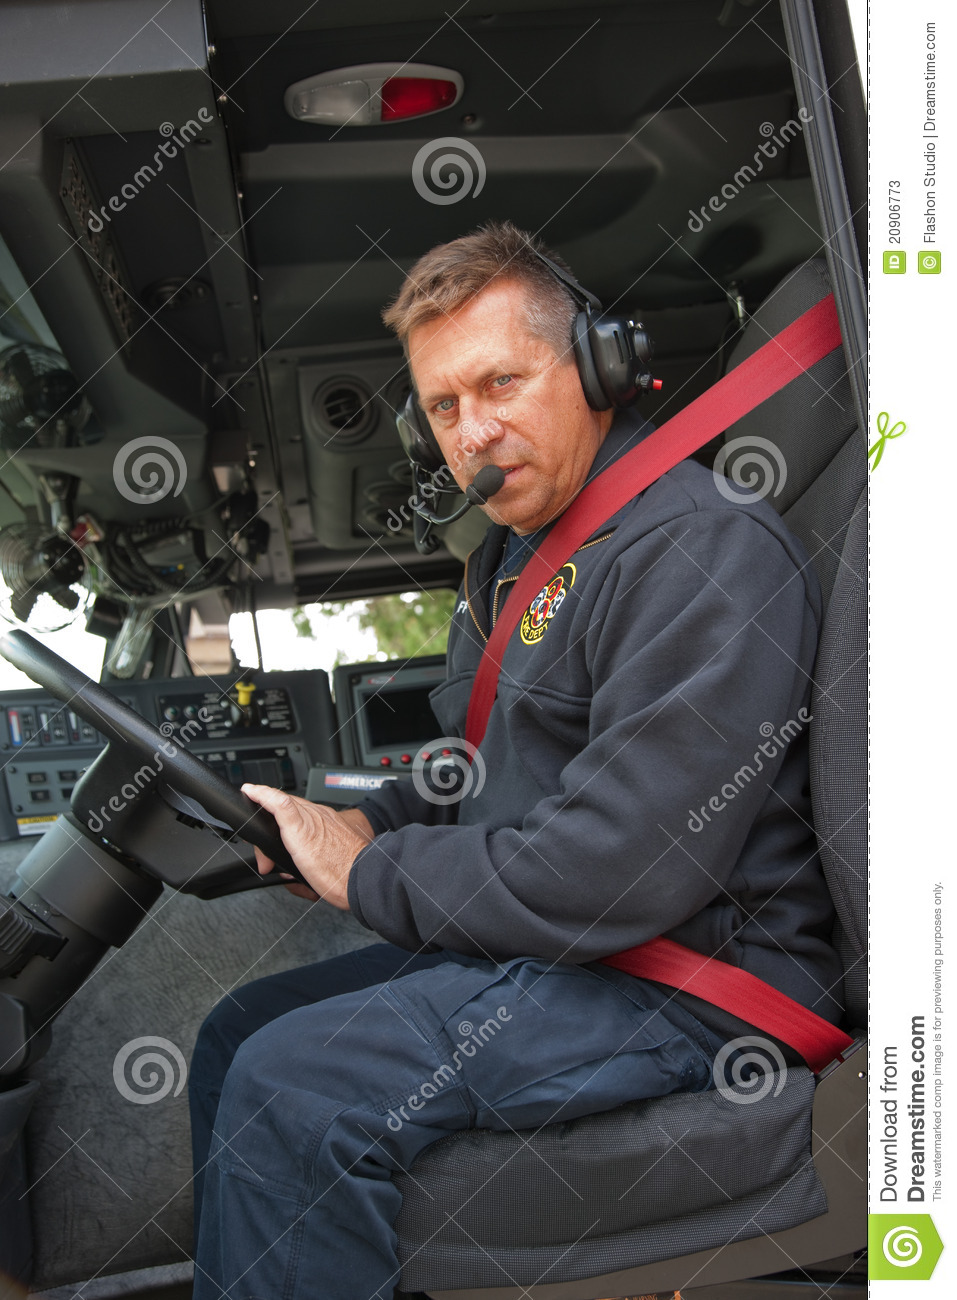 New Truck Prices >> Fire Truck Driver With Headphone On Stock Image - Image of ...